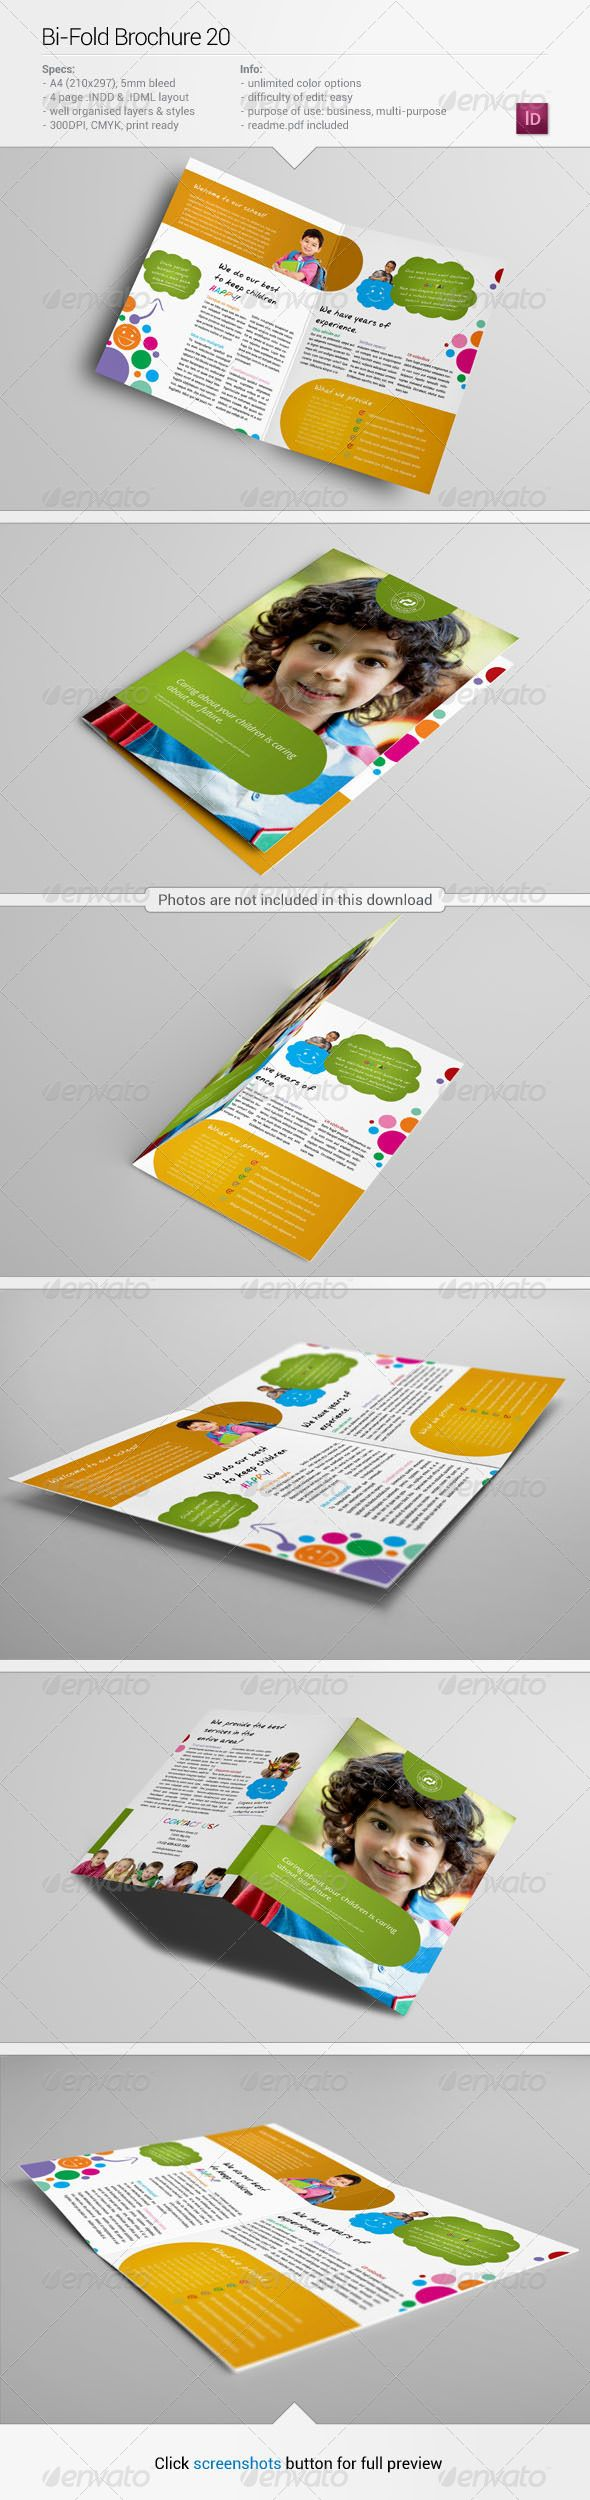 About this item Specifications: + 420×297mm (2x A4), + 300 dpi, + CMYK, + Bi-fold, + Unlimited color options, + 5mm bleeds, + Well organised layers, + Fully editable InDesign .INDD and .IDML files, + Photos and fonts are NOT included (links below and in Read Me file). 	 Fonts used: Roboto –  .fontsquirrel /fonts/roboto Open Sans –  .fontsquirrel /fonts/bebas-neue jr!hand-  .fontsquirrel /fonts/jr